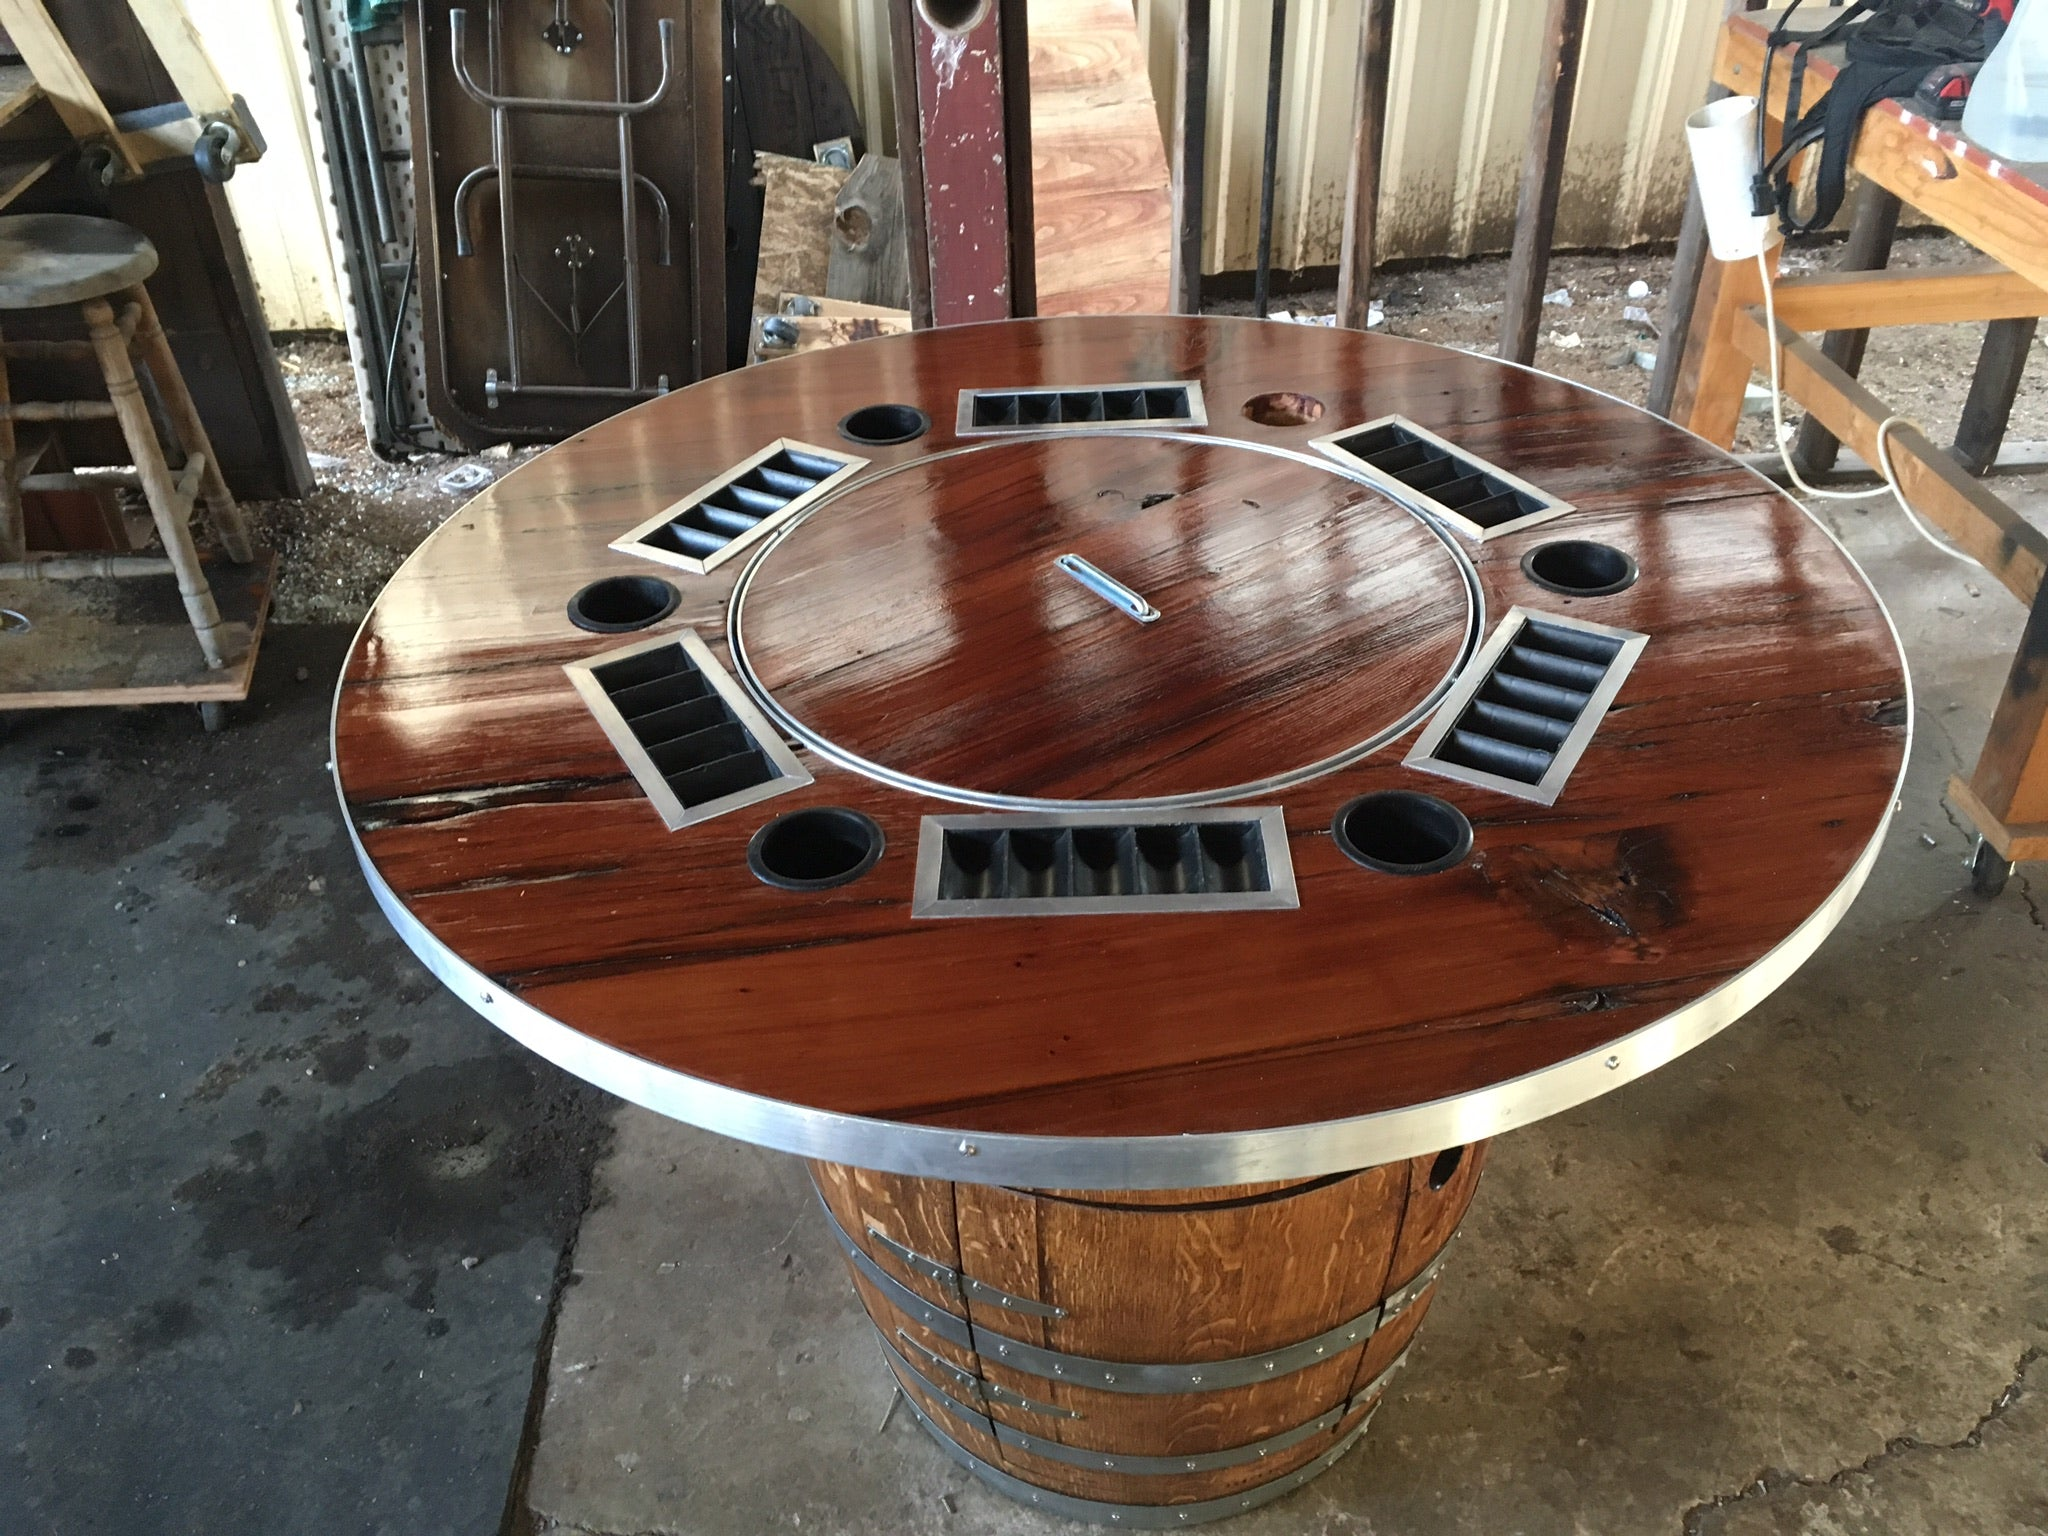 Barrel poker table and chairs programme casino deauville poker